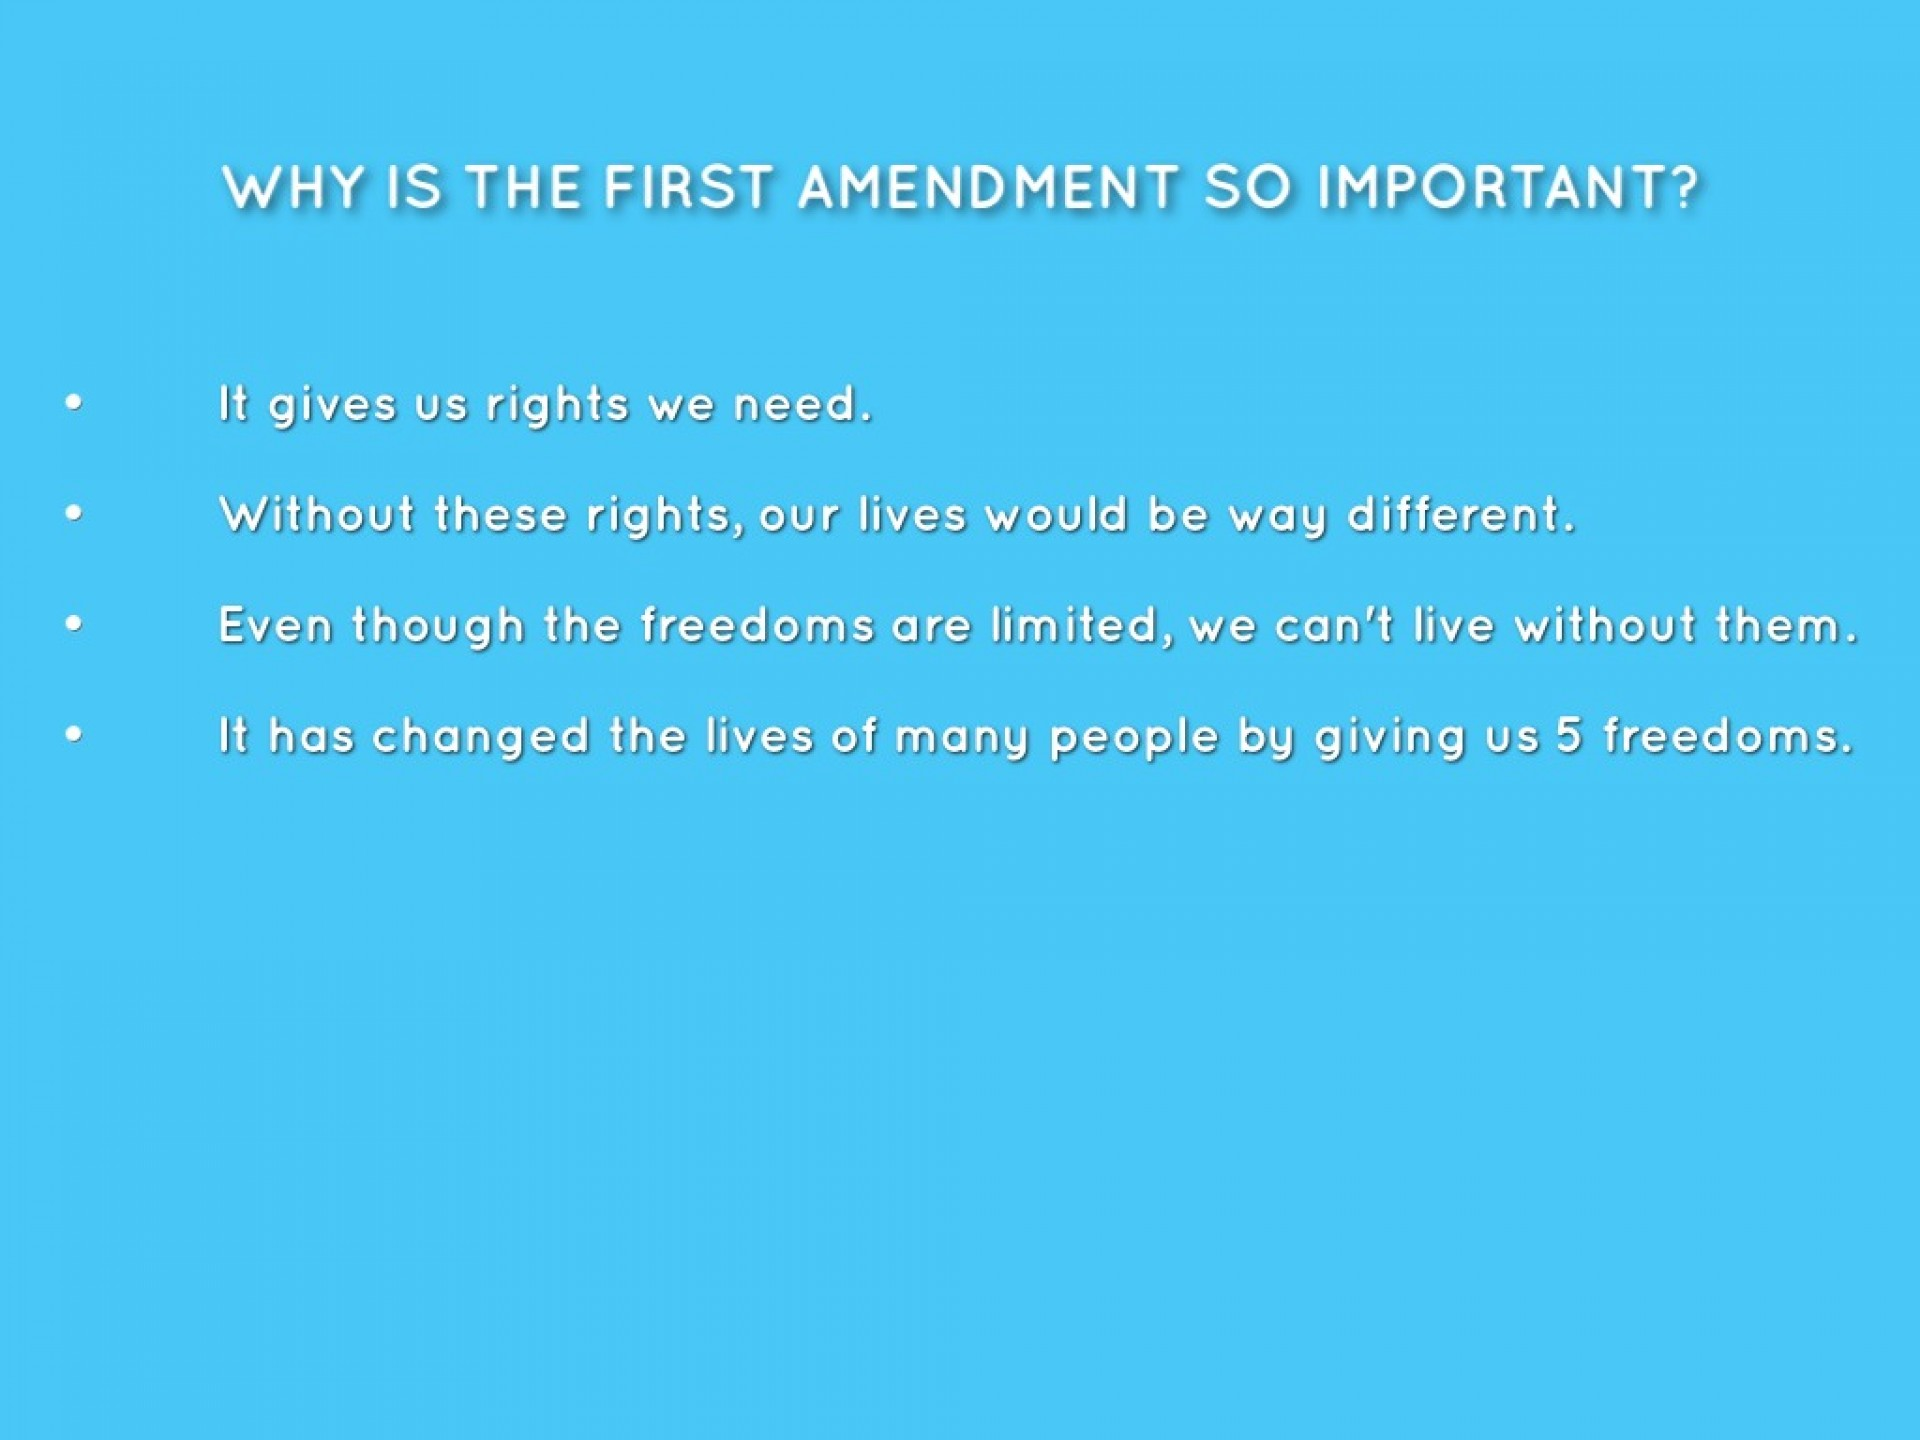 001 Essay Example Why Is The First Amendment Amazing Important 1920